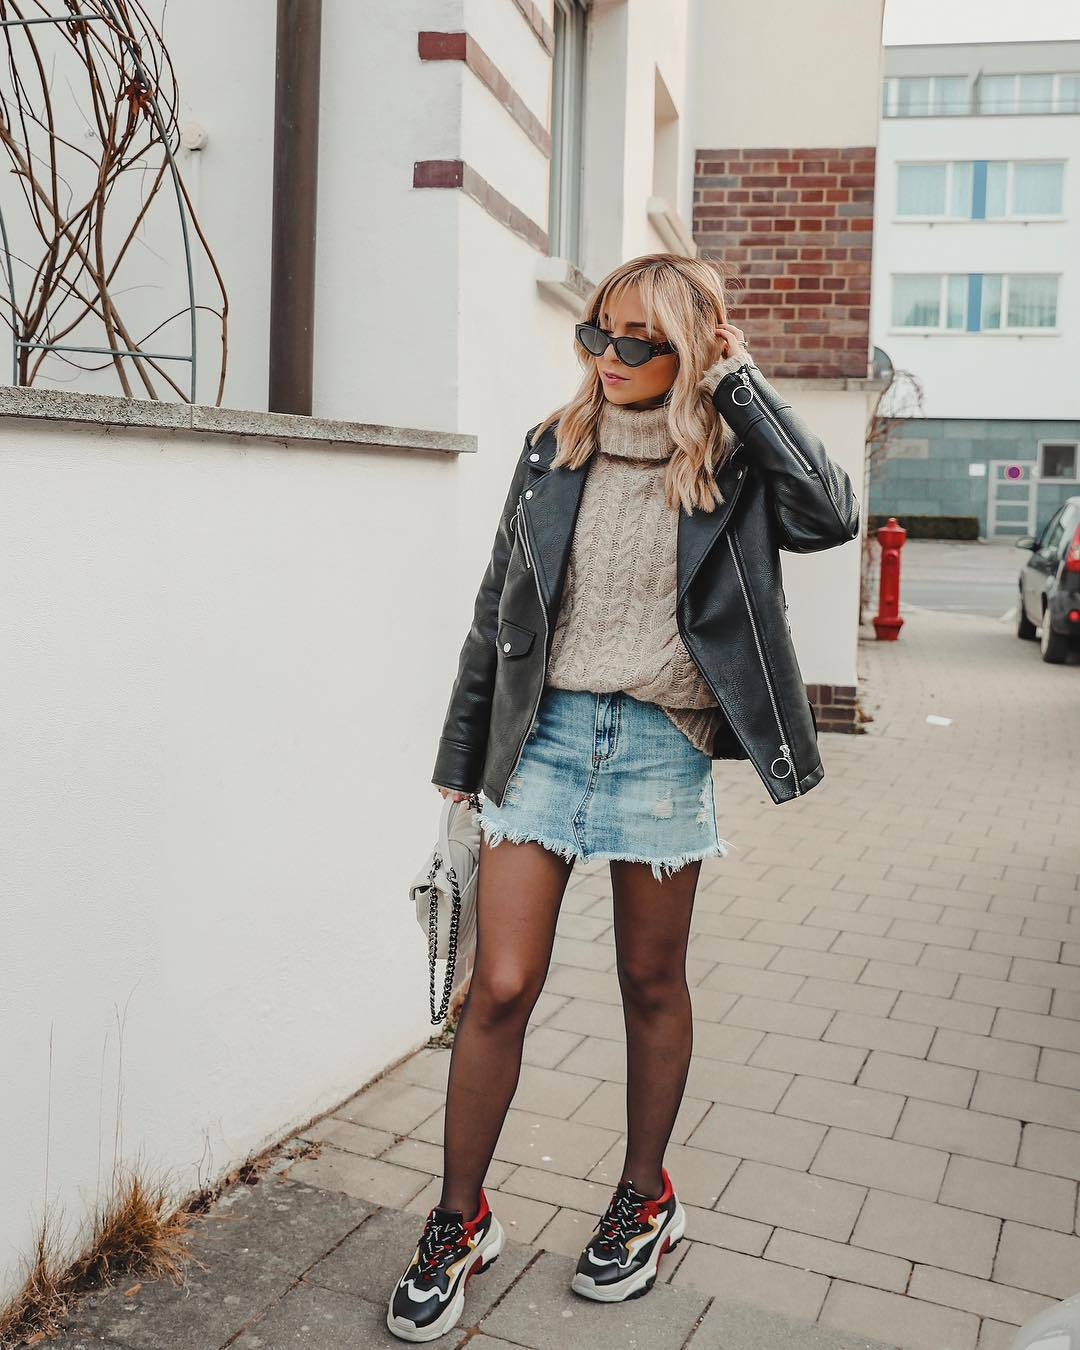 skirt denim skirt sneakers tights black leather jacket turtleneck sweater cable knit white bag